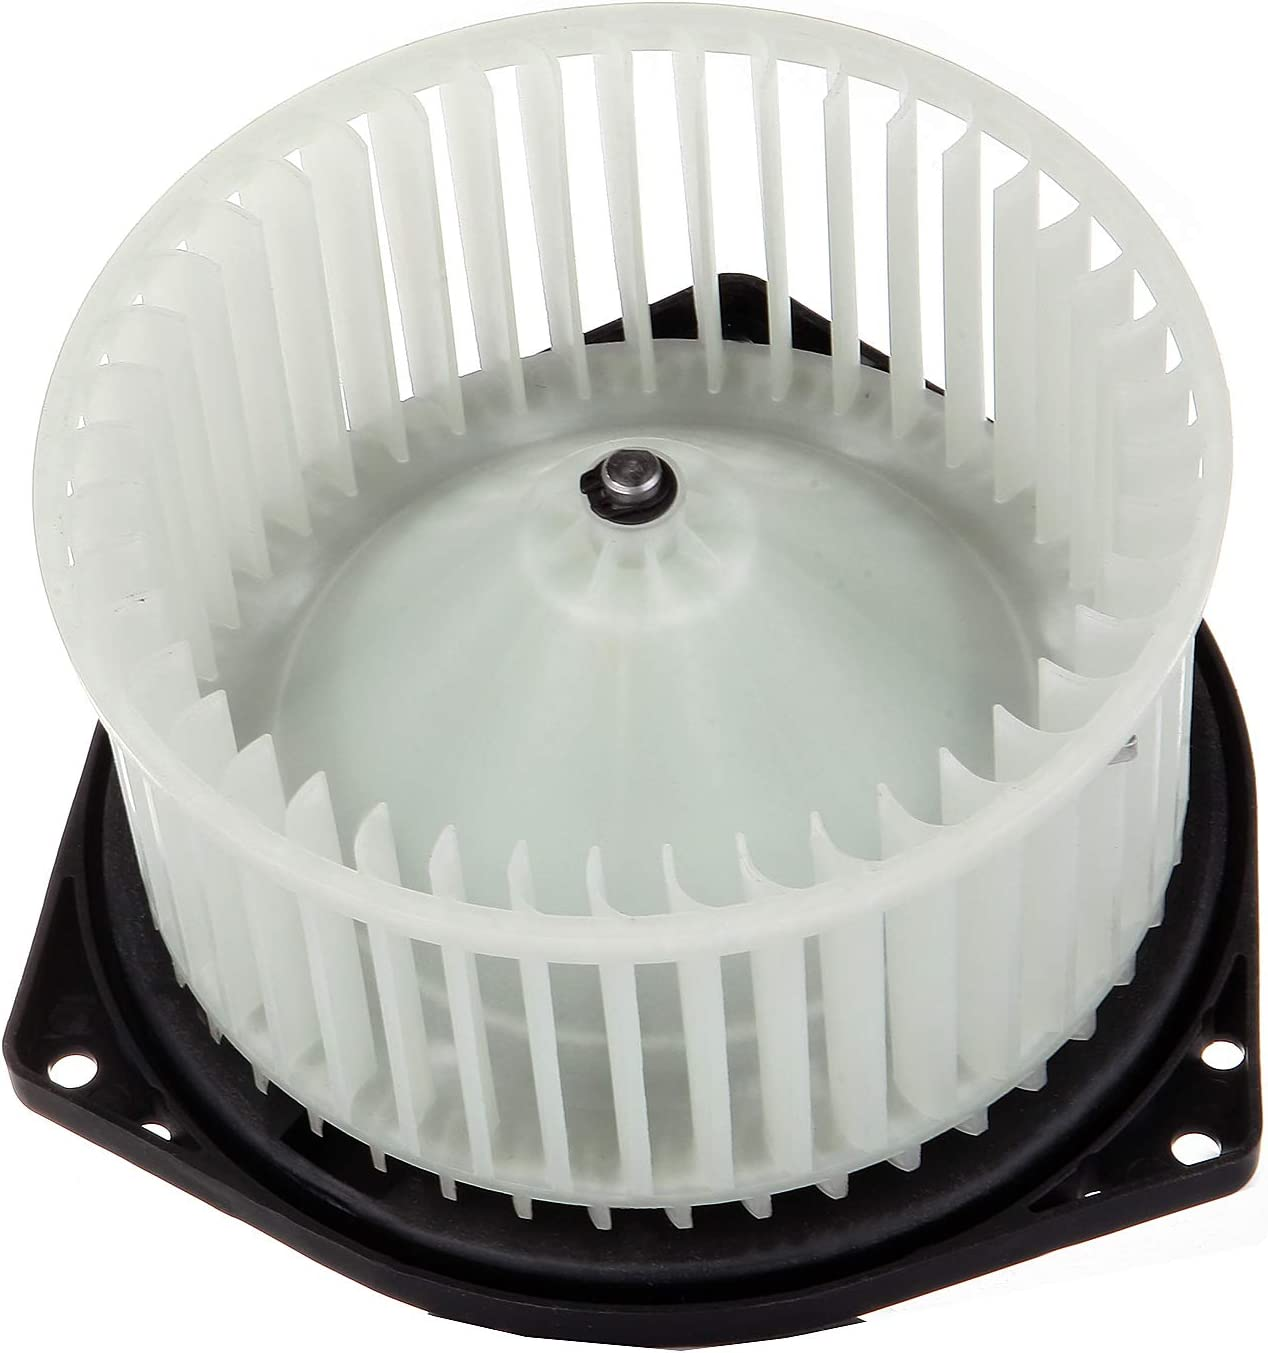 INEEDUP 72240FA000 ABS Blower Motor Air Conditioning And Heating Fit for 2002-2004 Infiniti I35//2000-2003 Maxima// 2003-2006 Baja